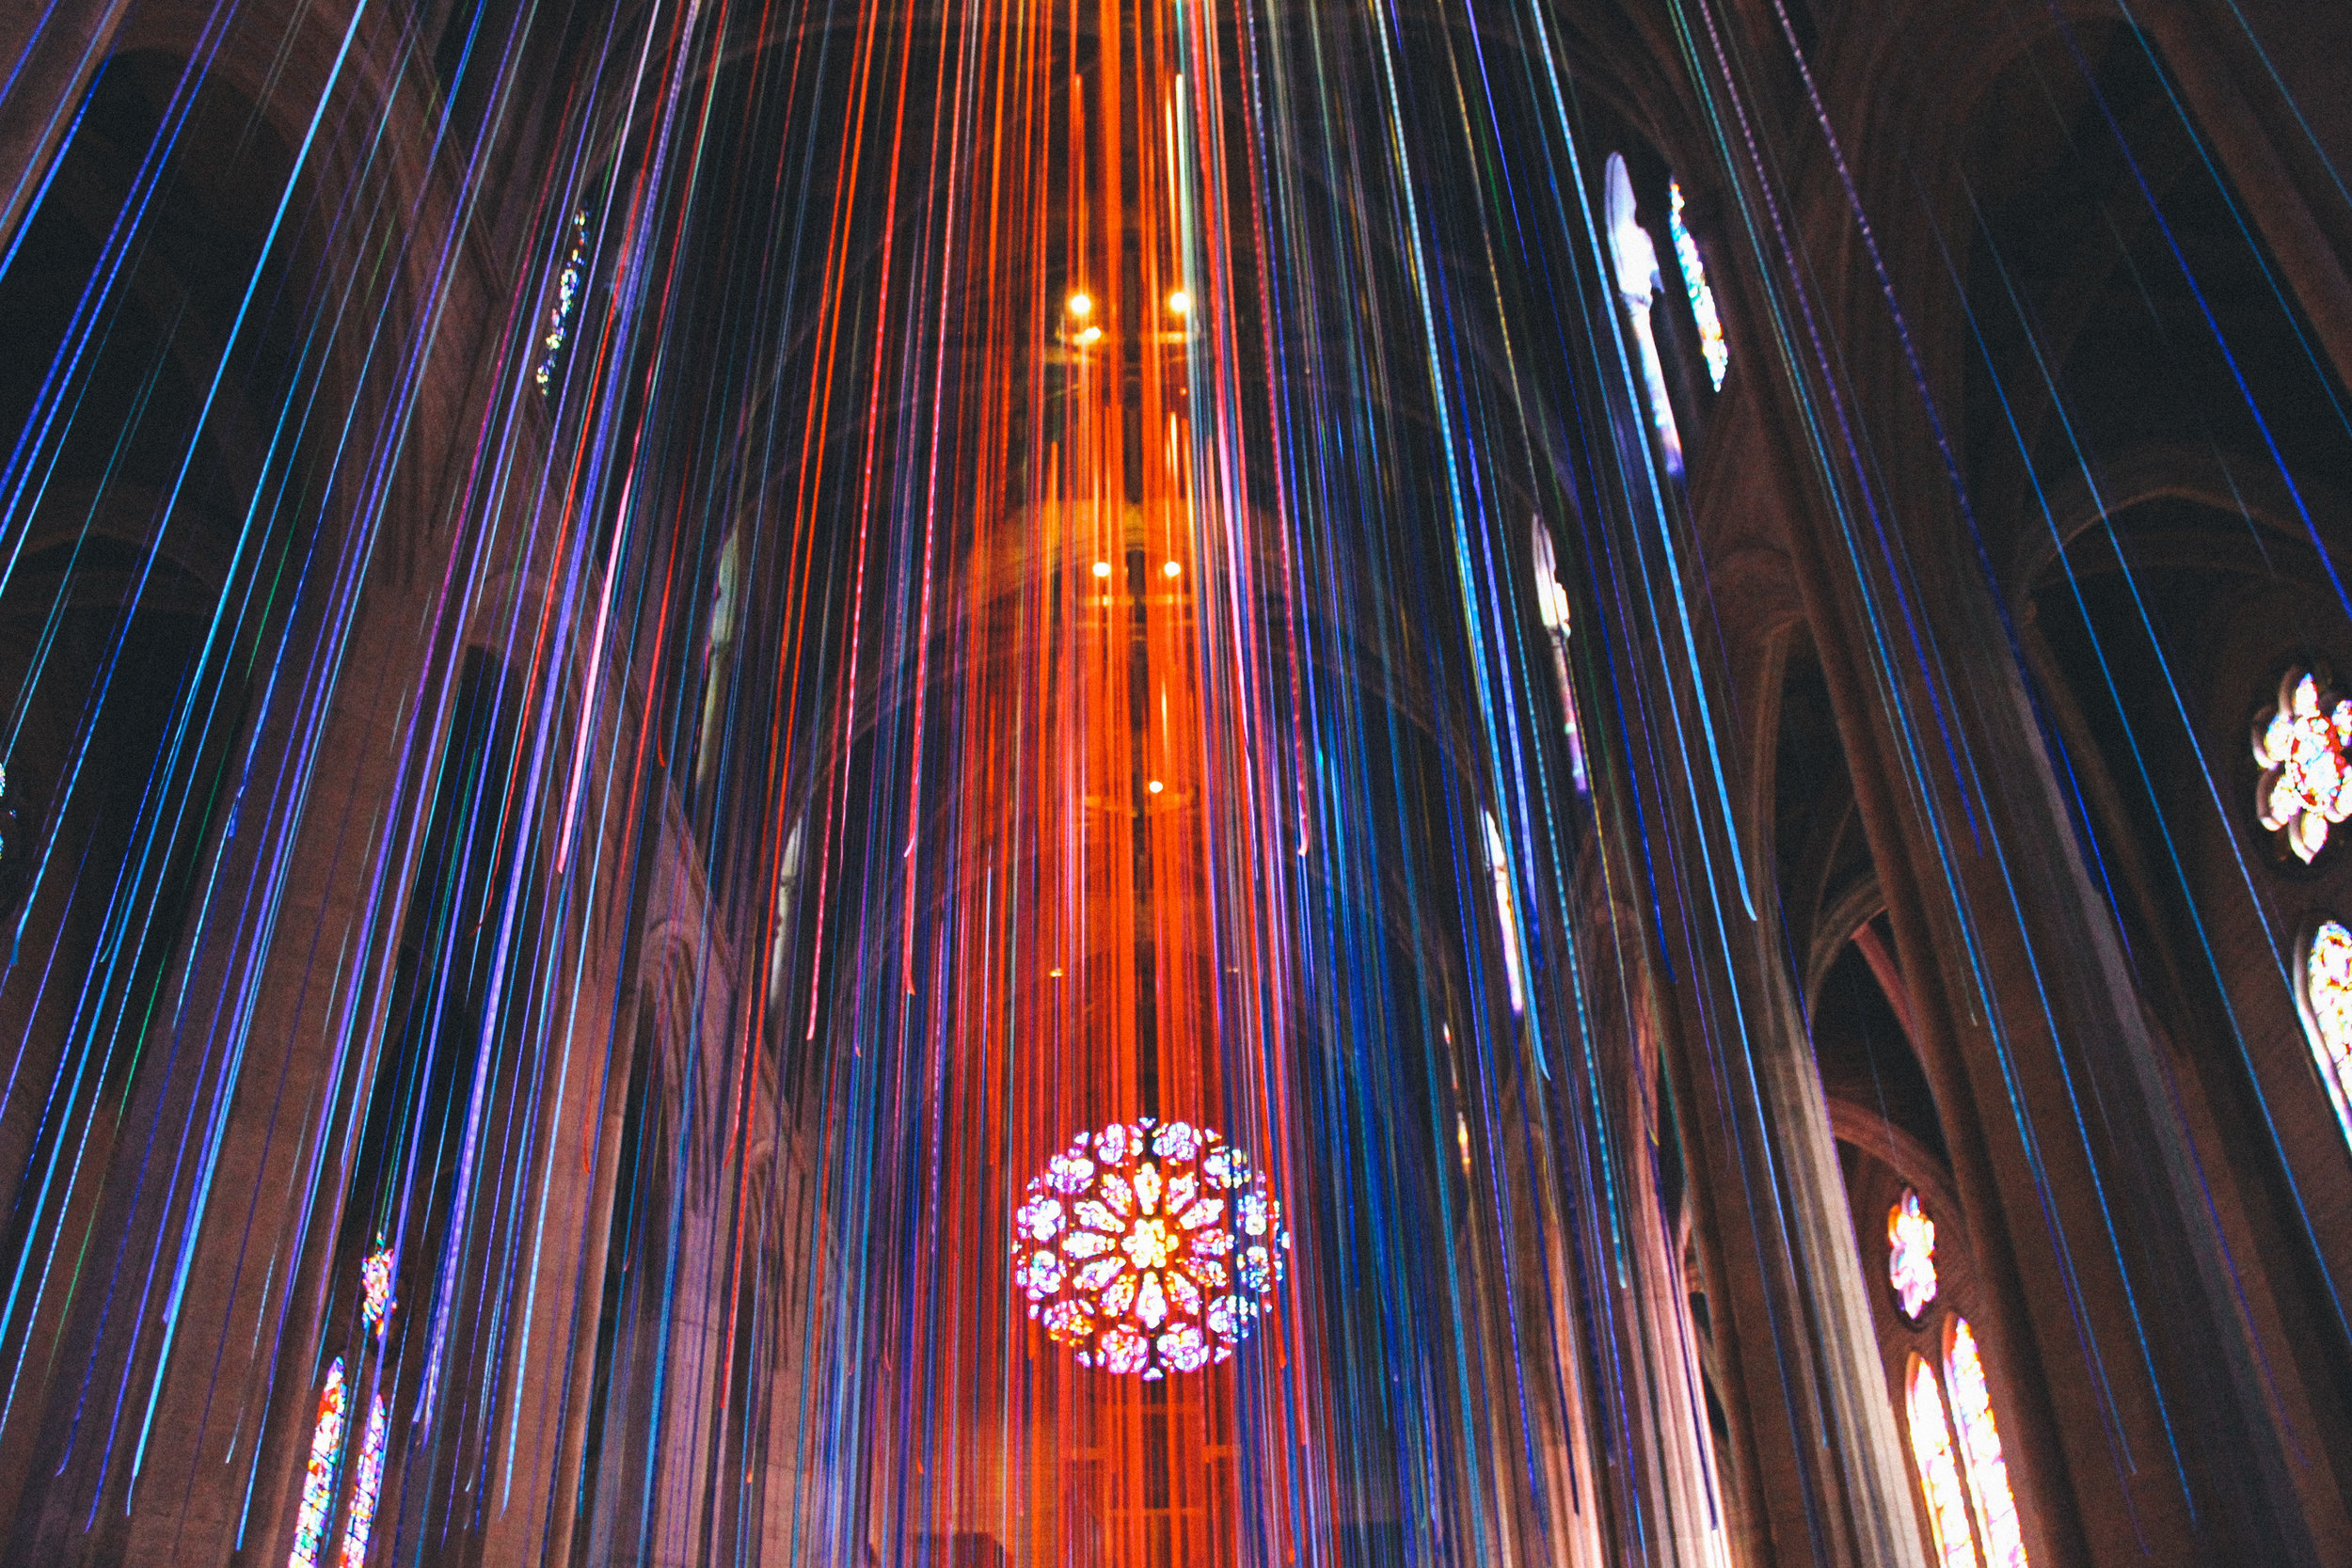 Graced with Light art installation at Grace Cathedral in San Francisco, CA